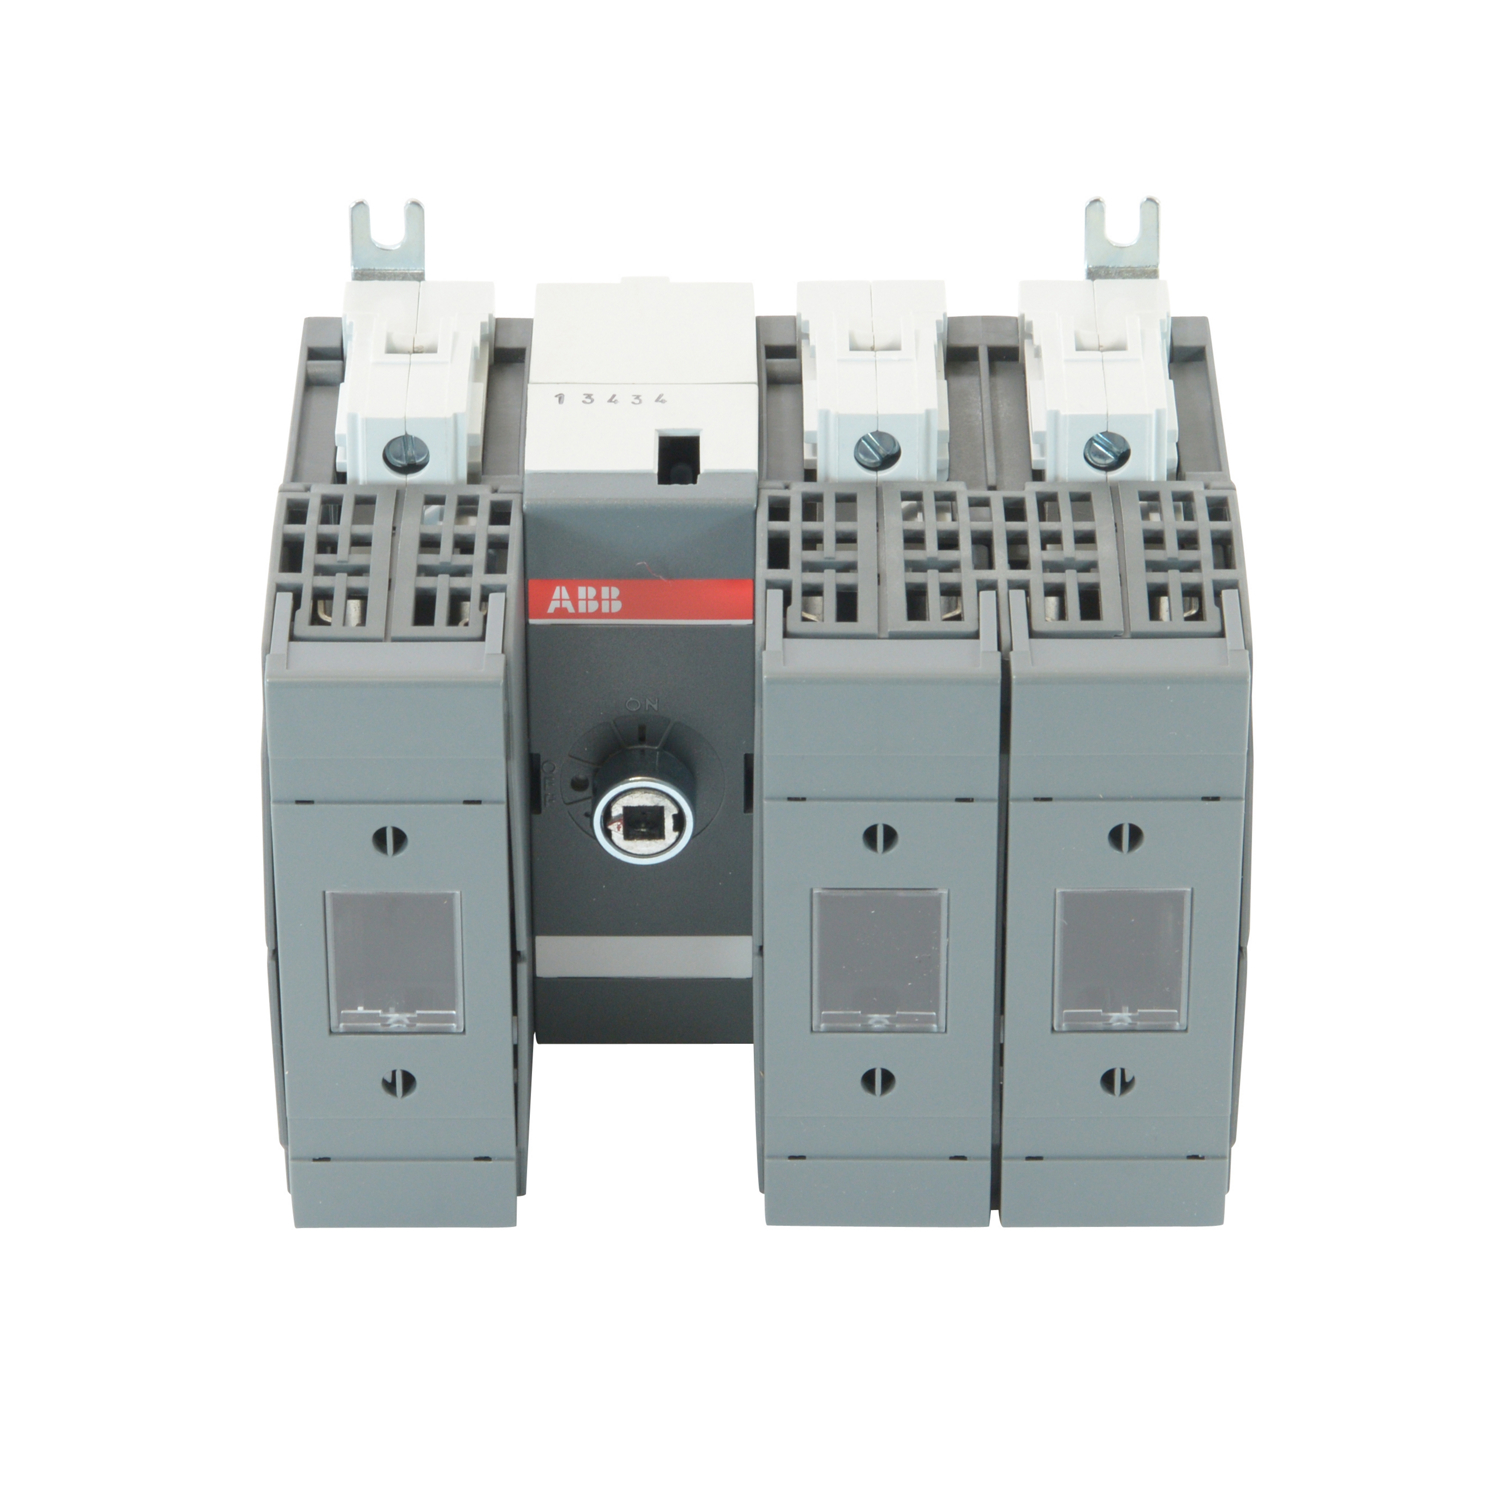 OS60GJ12 ABB 3POLE 60A CLASS J FUSIBLE DISCONNECT SWITCH; 1POLE LEFT/2POLES RIGHT OF MECHANISM